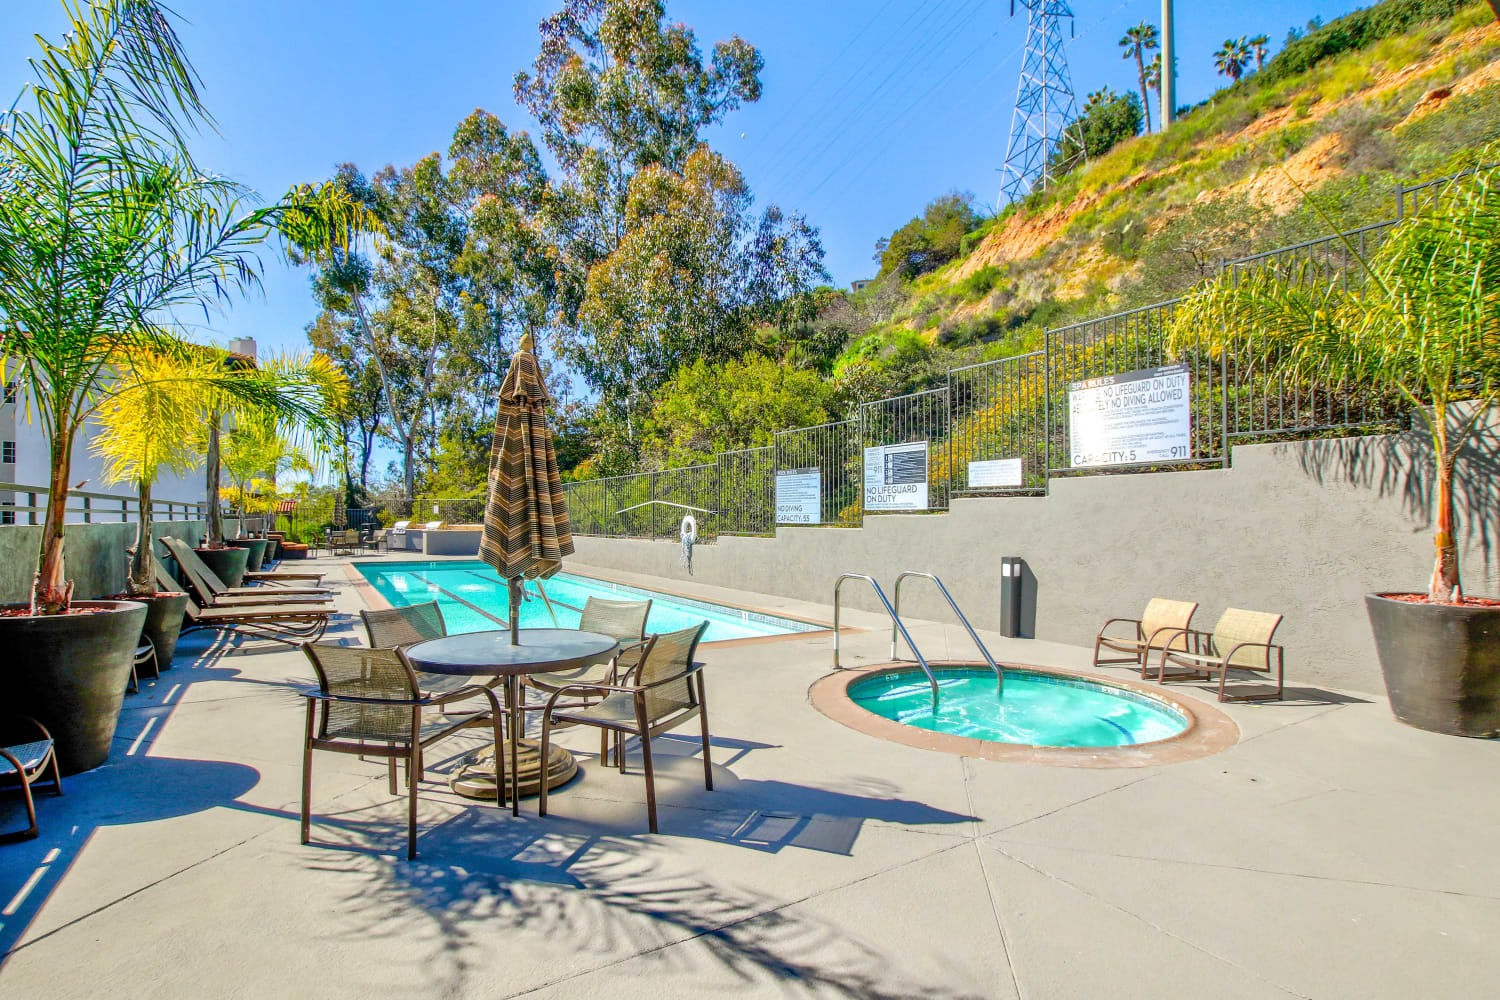 Enjoy a swimming pool and a hot tub at Fashion Terrace in San Diego, California